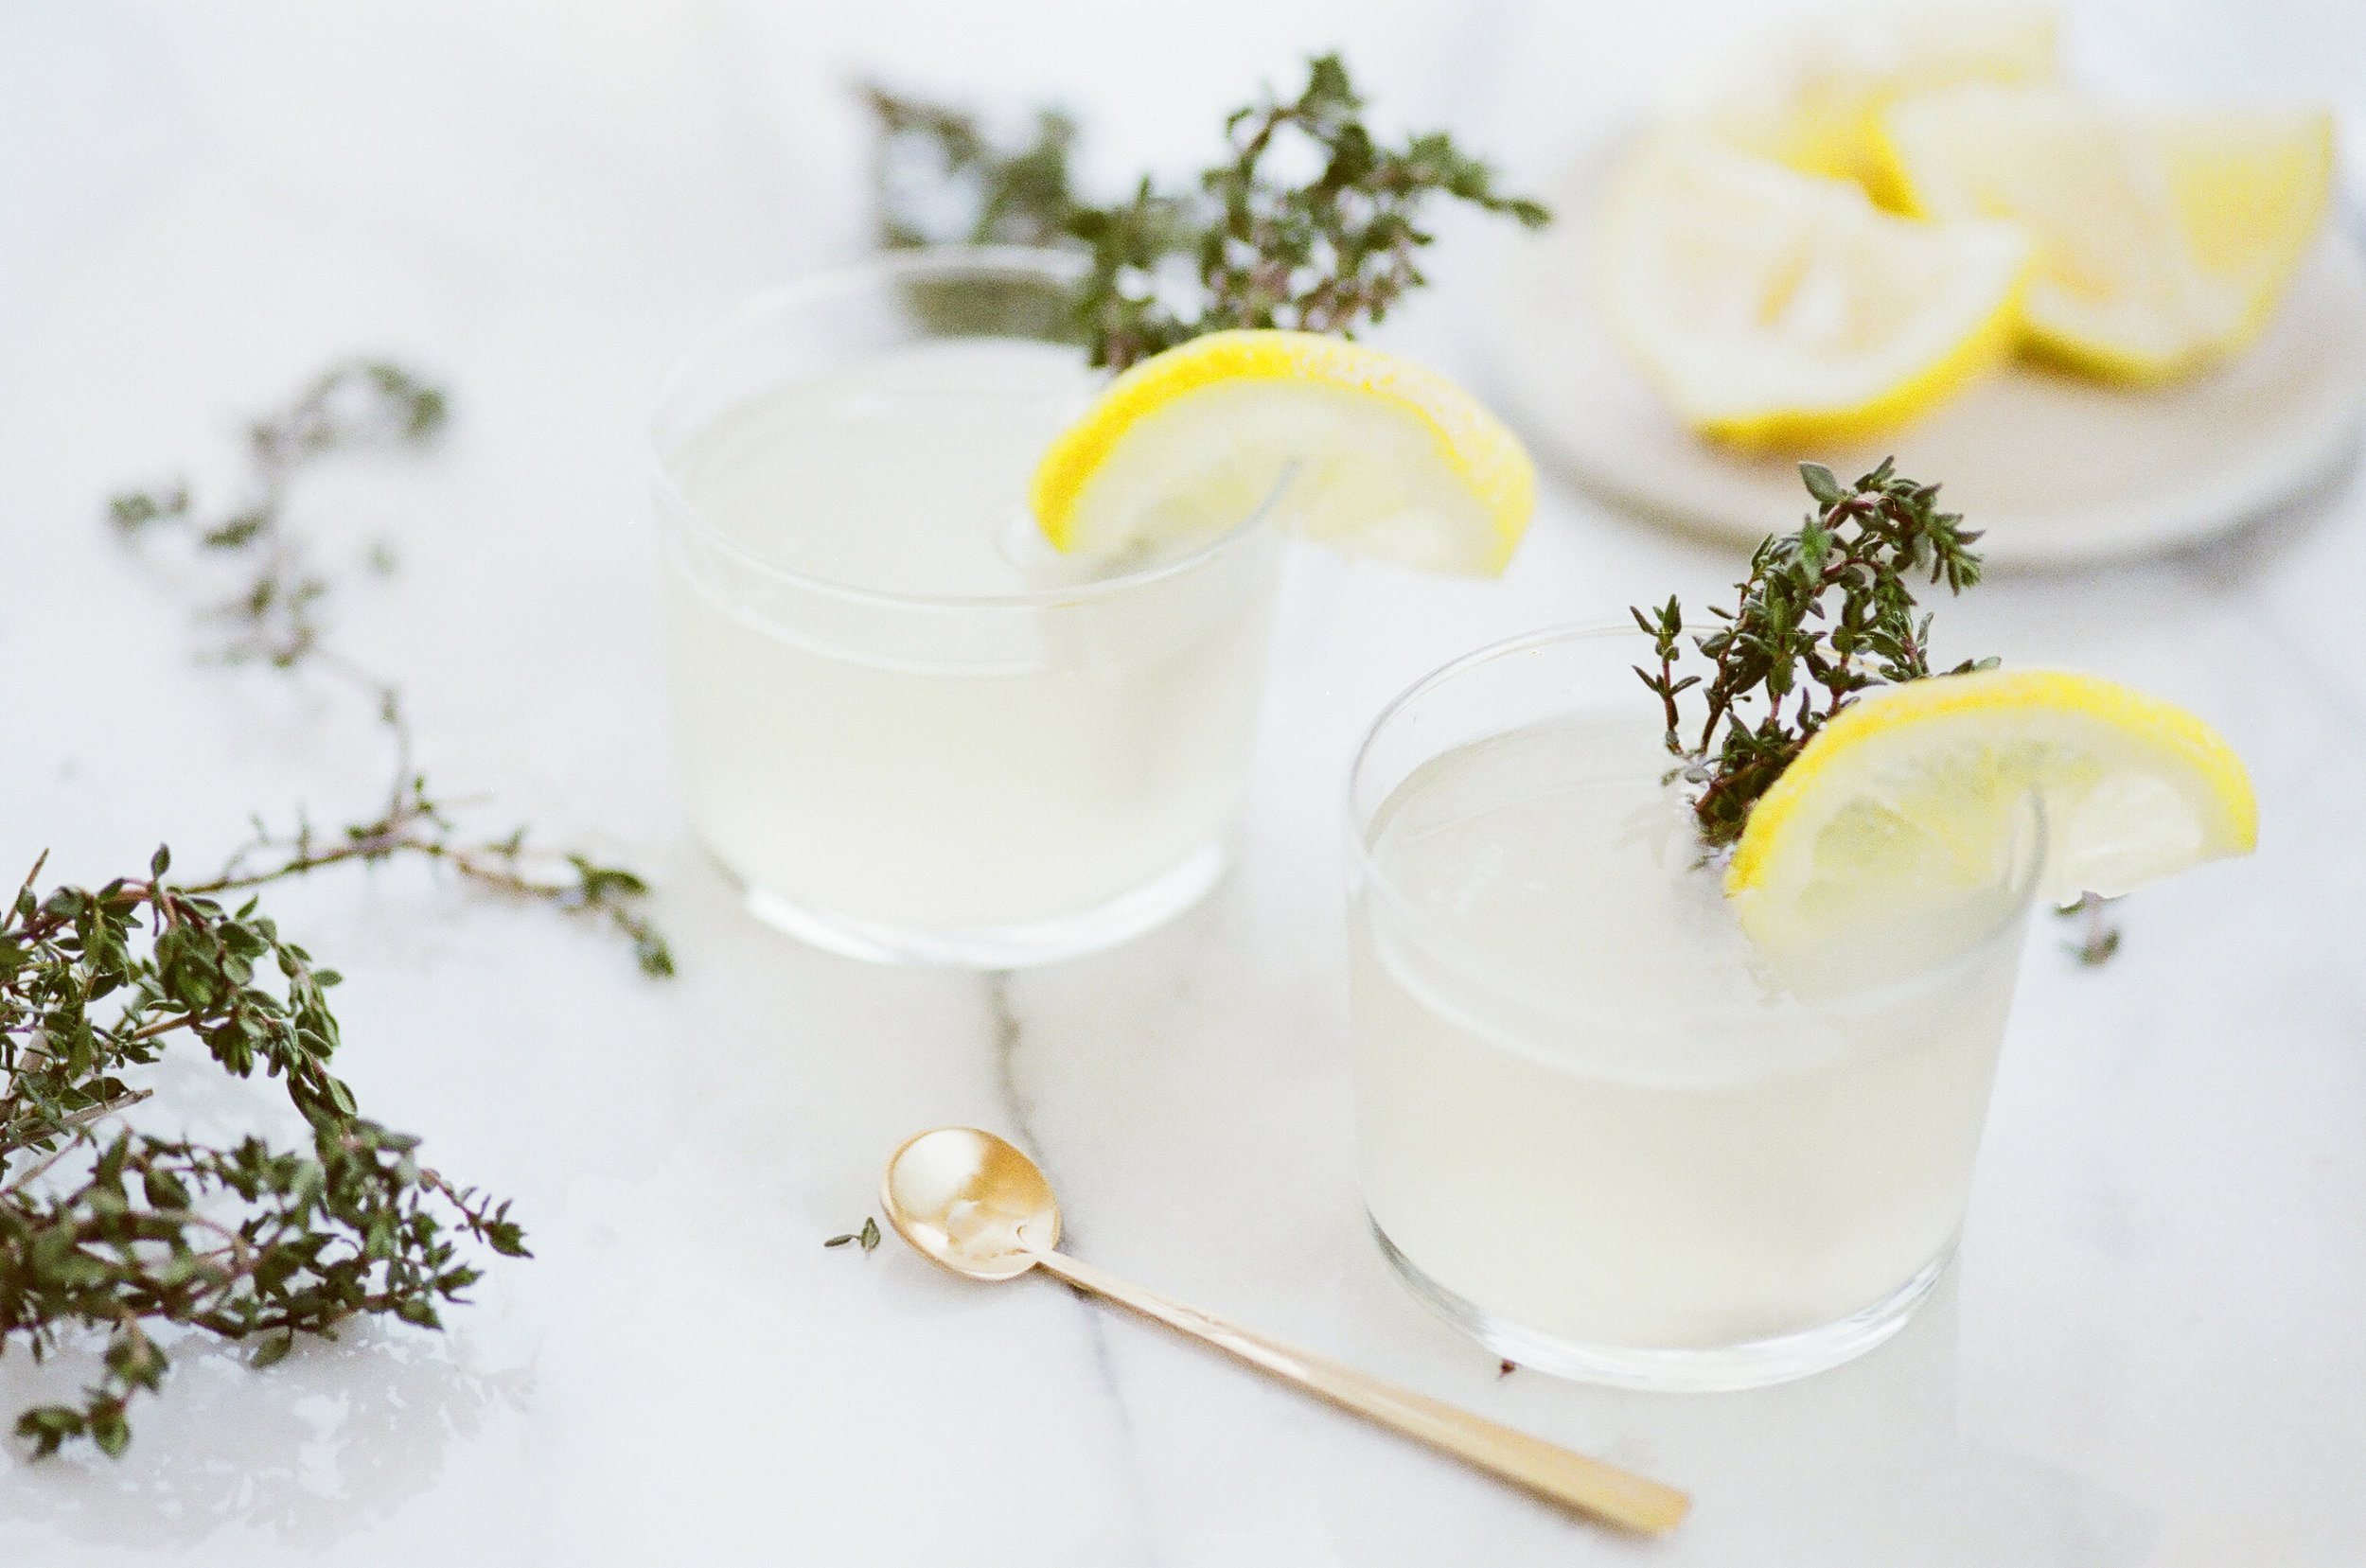 This thyme lemonade is the perfect drink for summer heat. Paired with gin, it also makes for a lovely year-round cocktail.